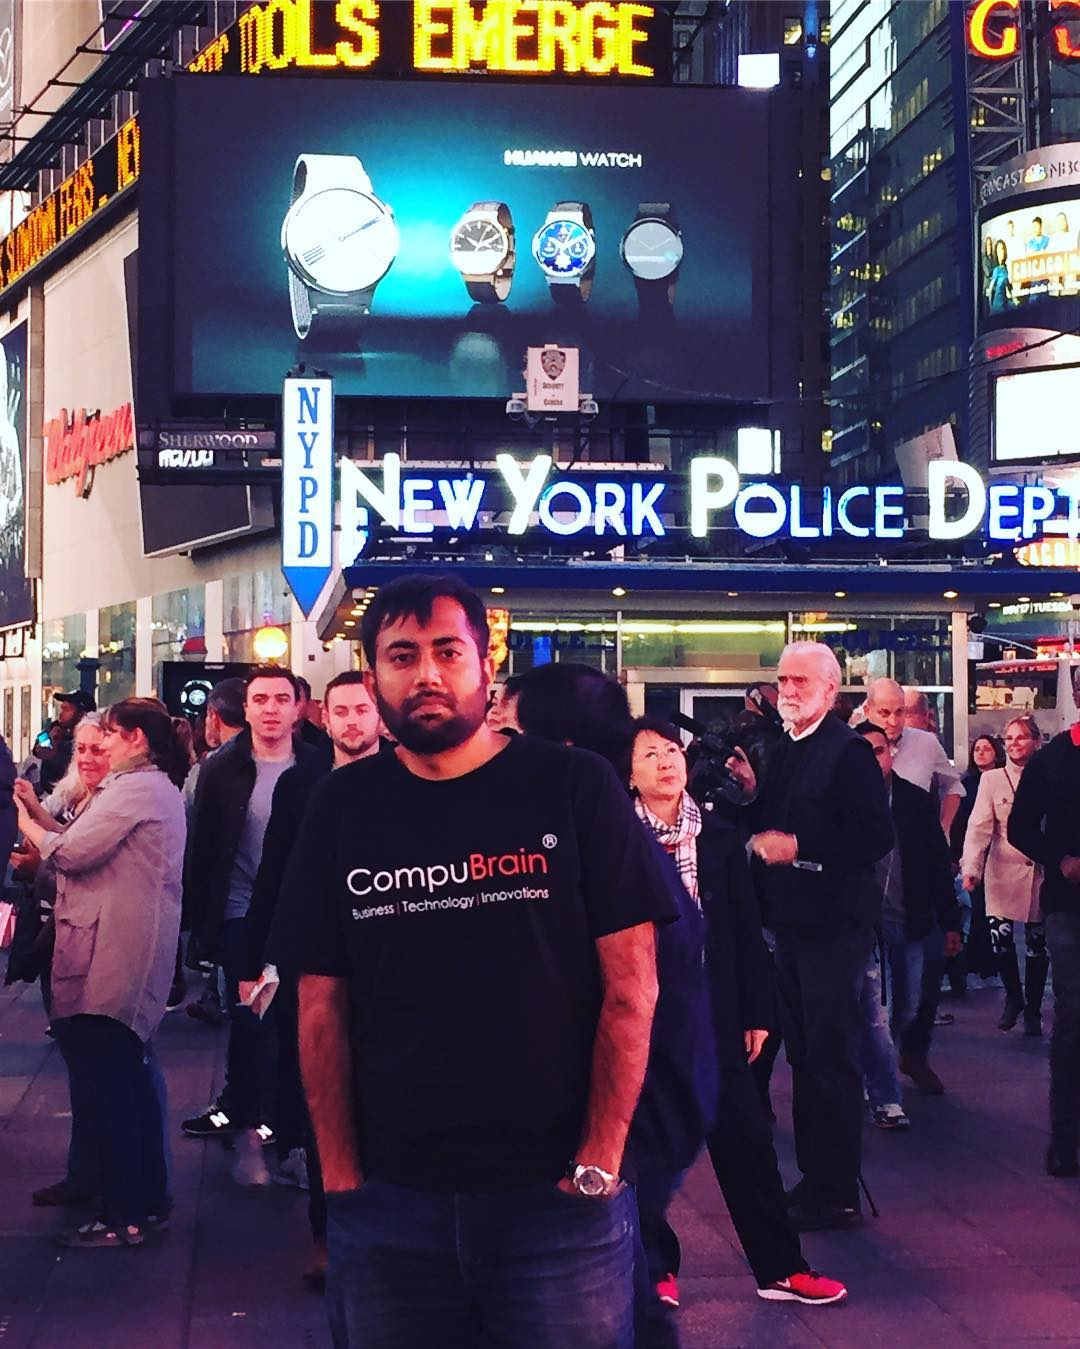 Bijoy Patel,  TimesSquare, beinggujarati, gujju, throwbacktrips, nyc